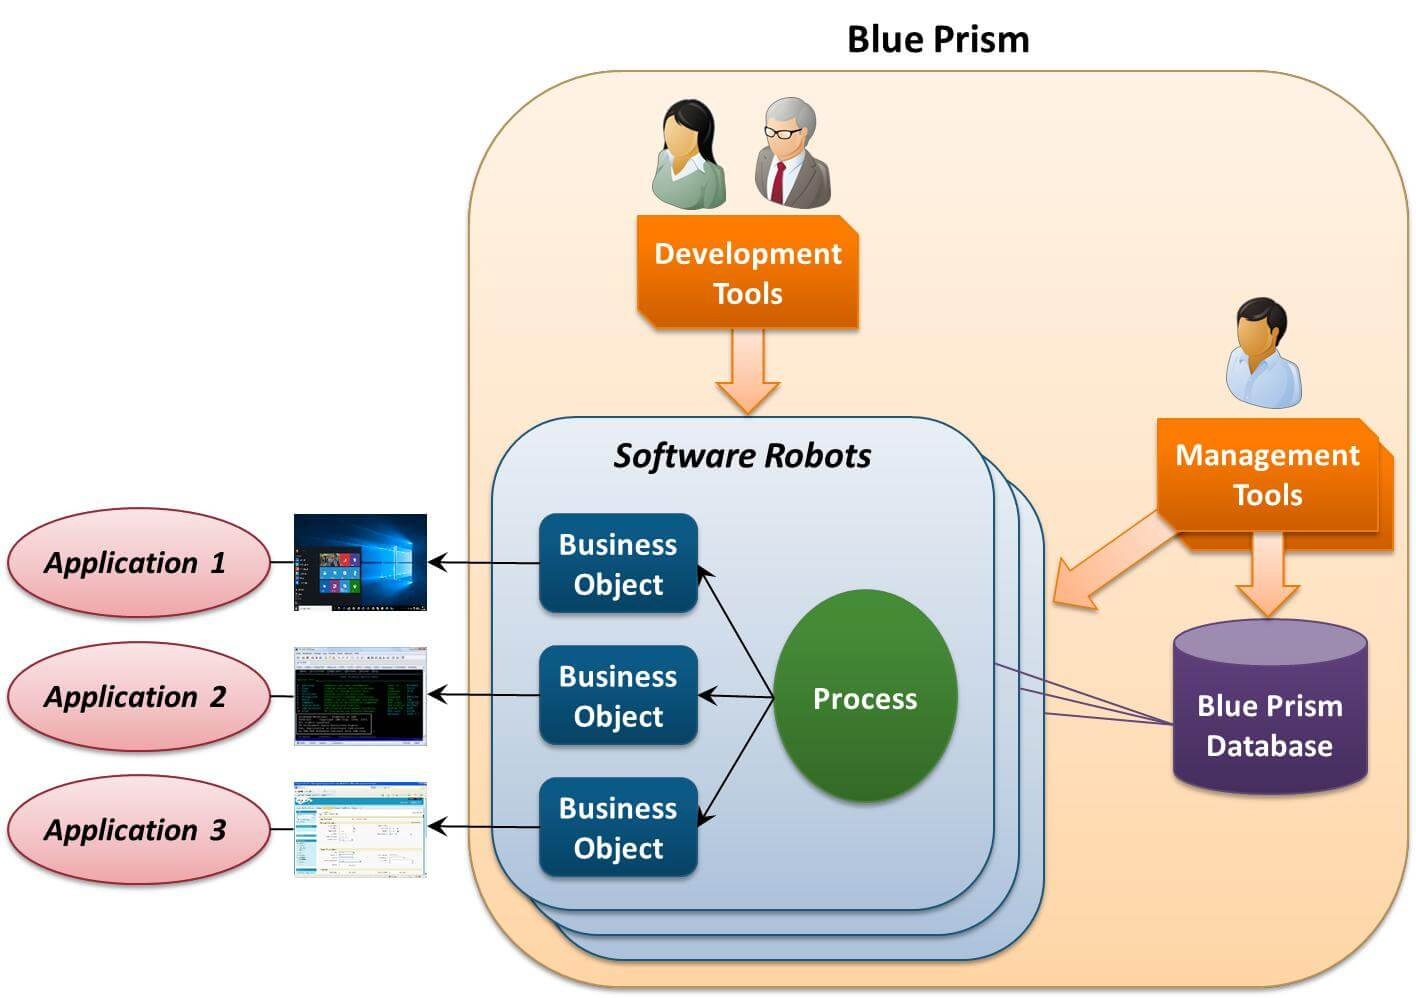 Overview of Blue Prism